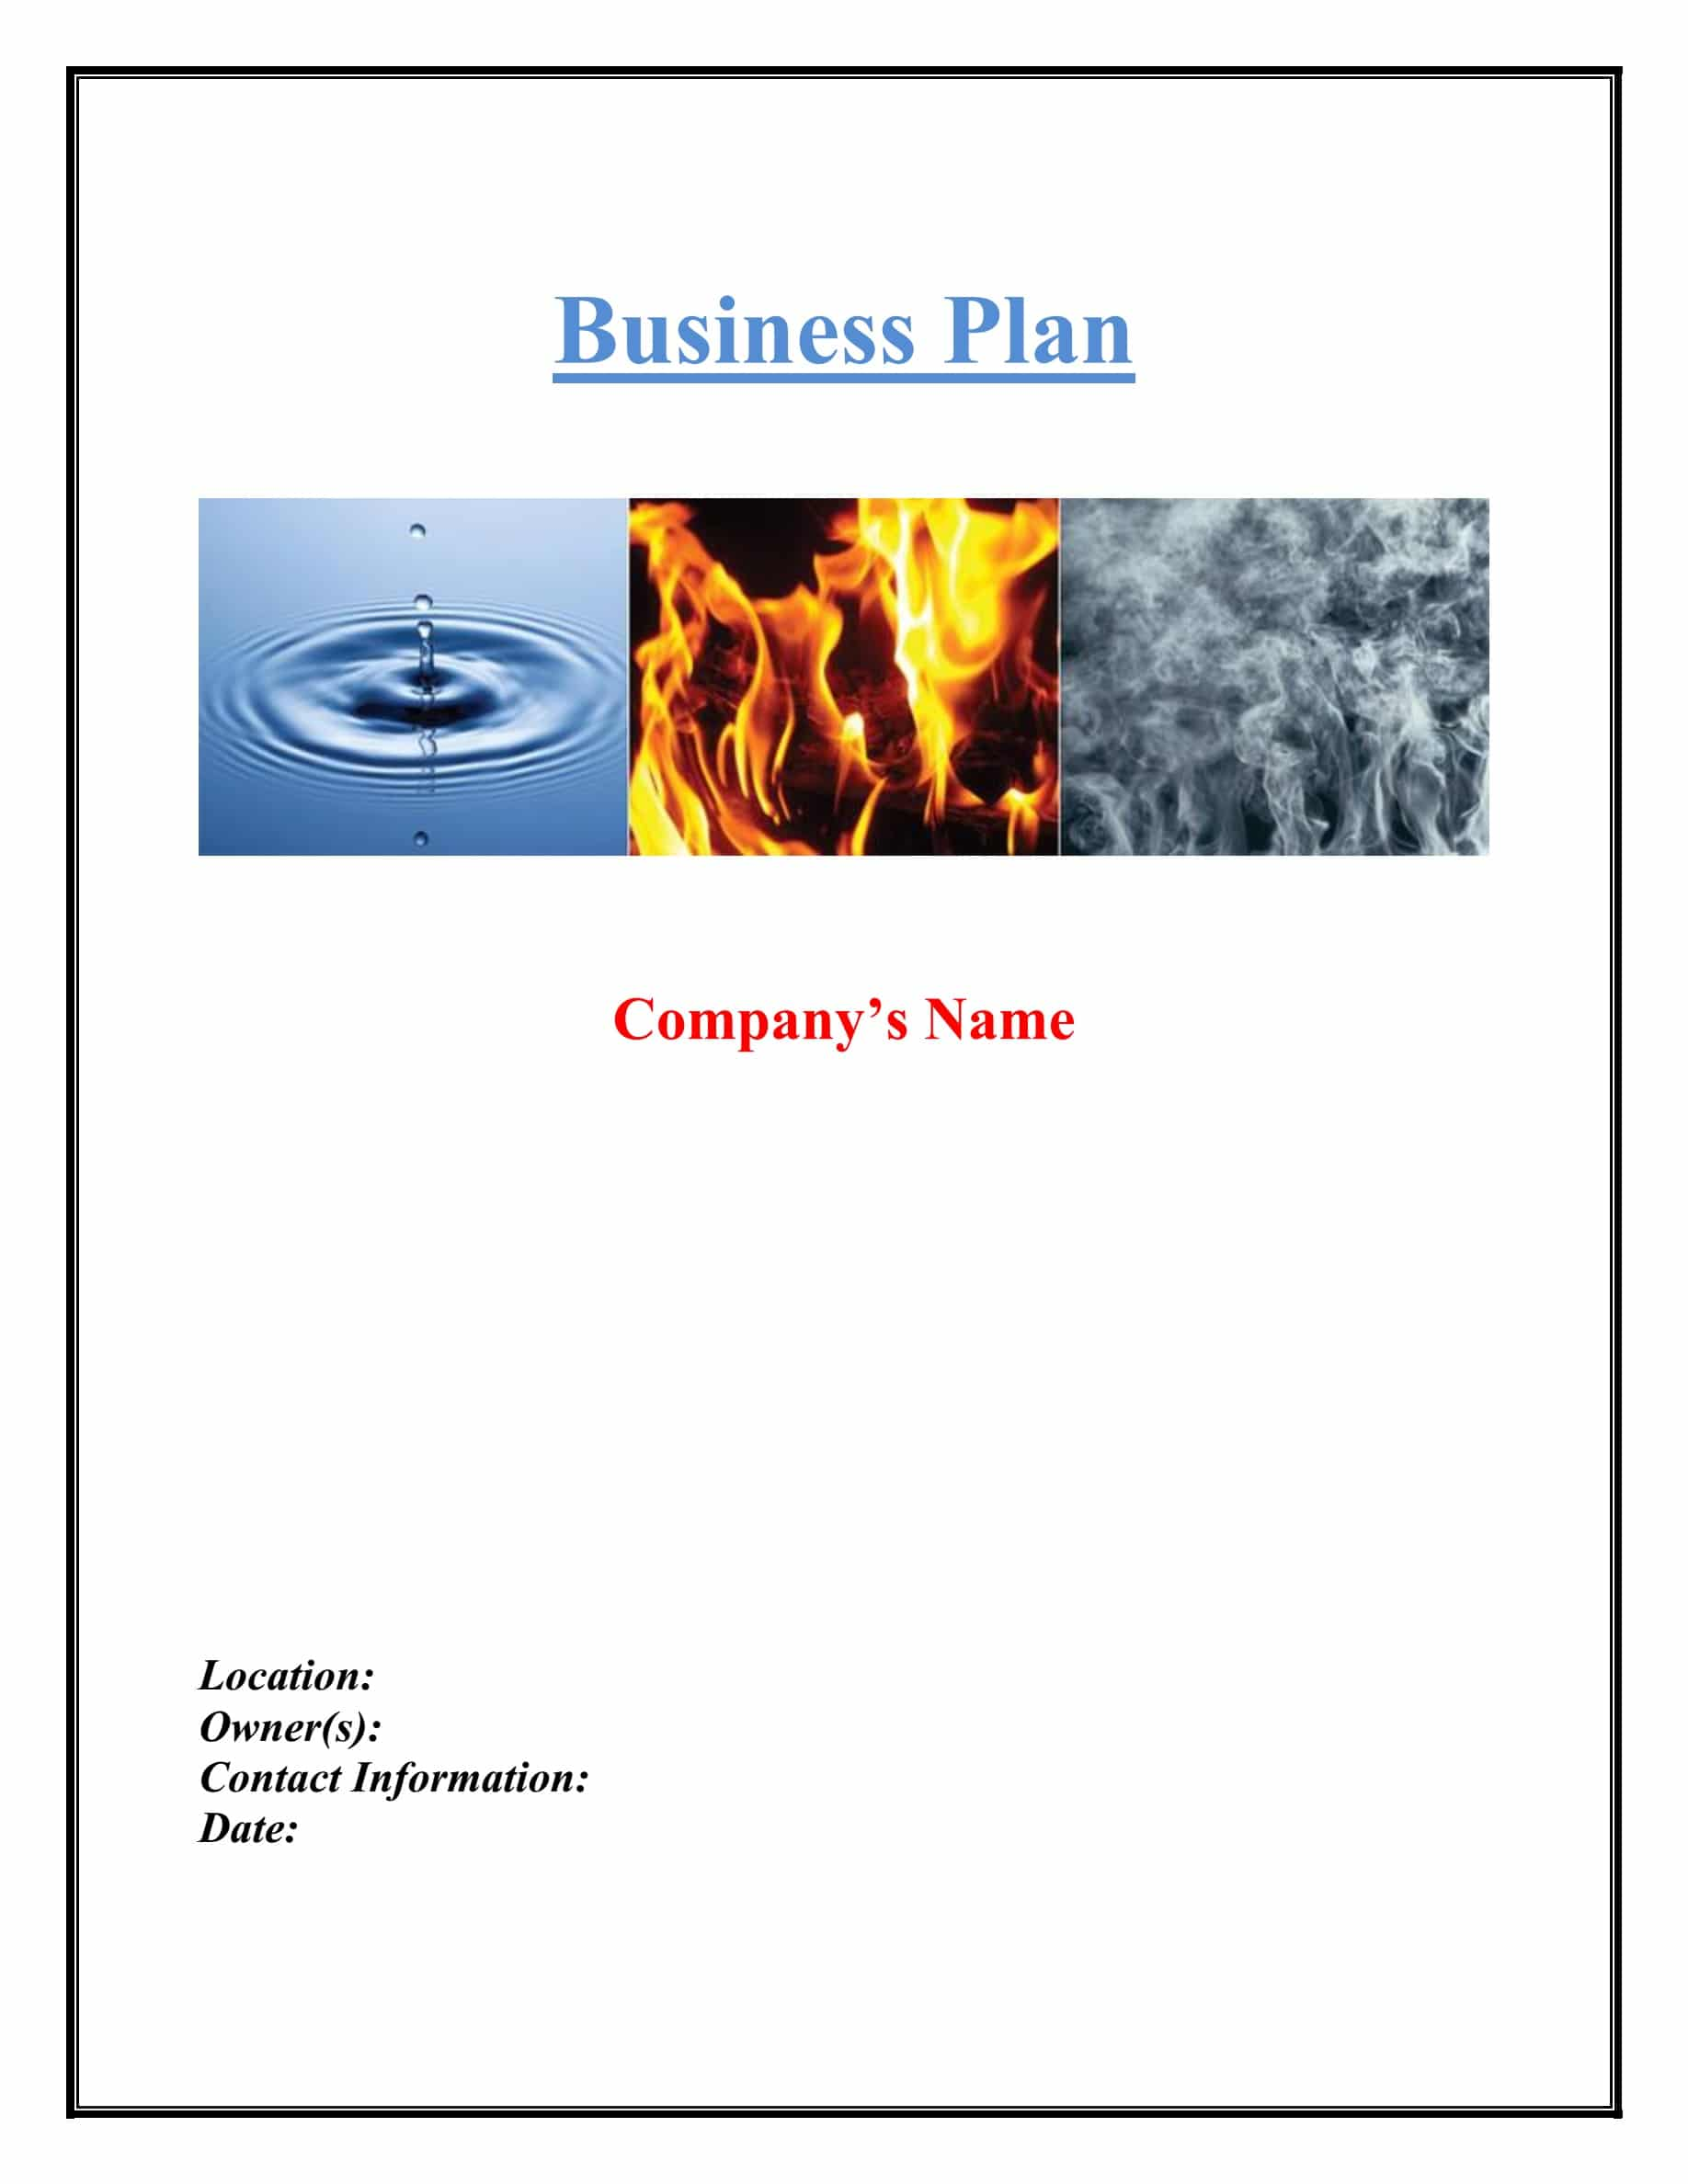 Water Fire And Smoke Restoration Business Plan Template